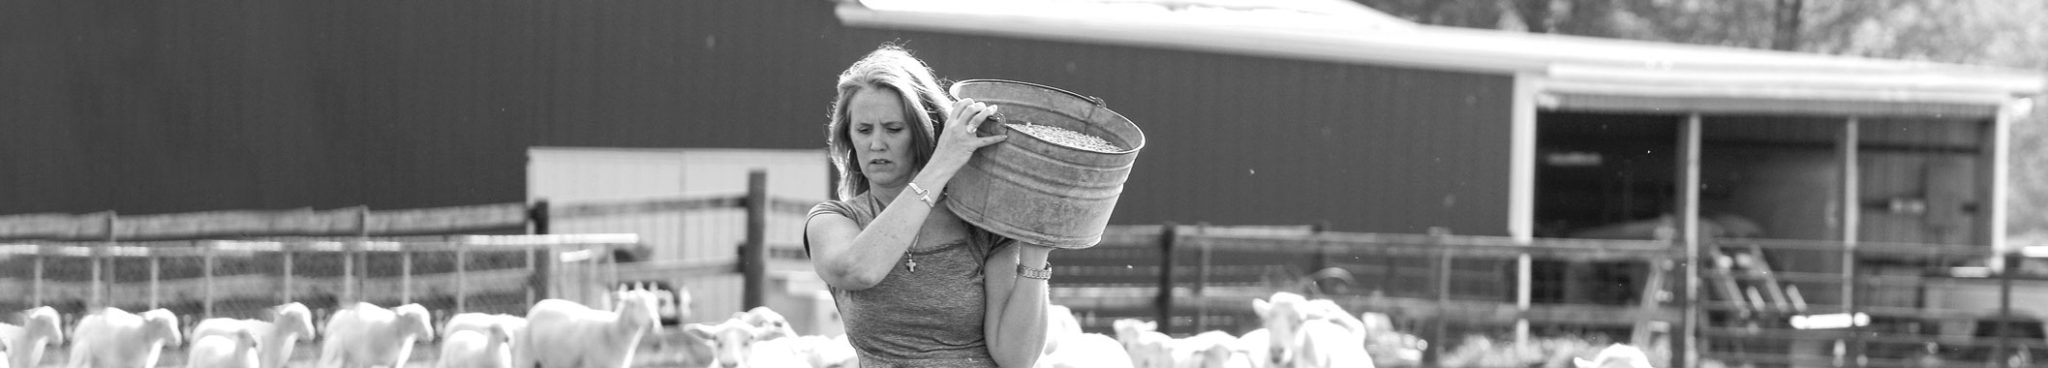 ORIJEN Lamb Freeze-dried Cat Treats - Woman with bucket of feed for sheep - Kelly of M&E Family Farms in Russellville, Kentucky. Trusted supplier of fresh local lamb.